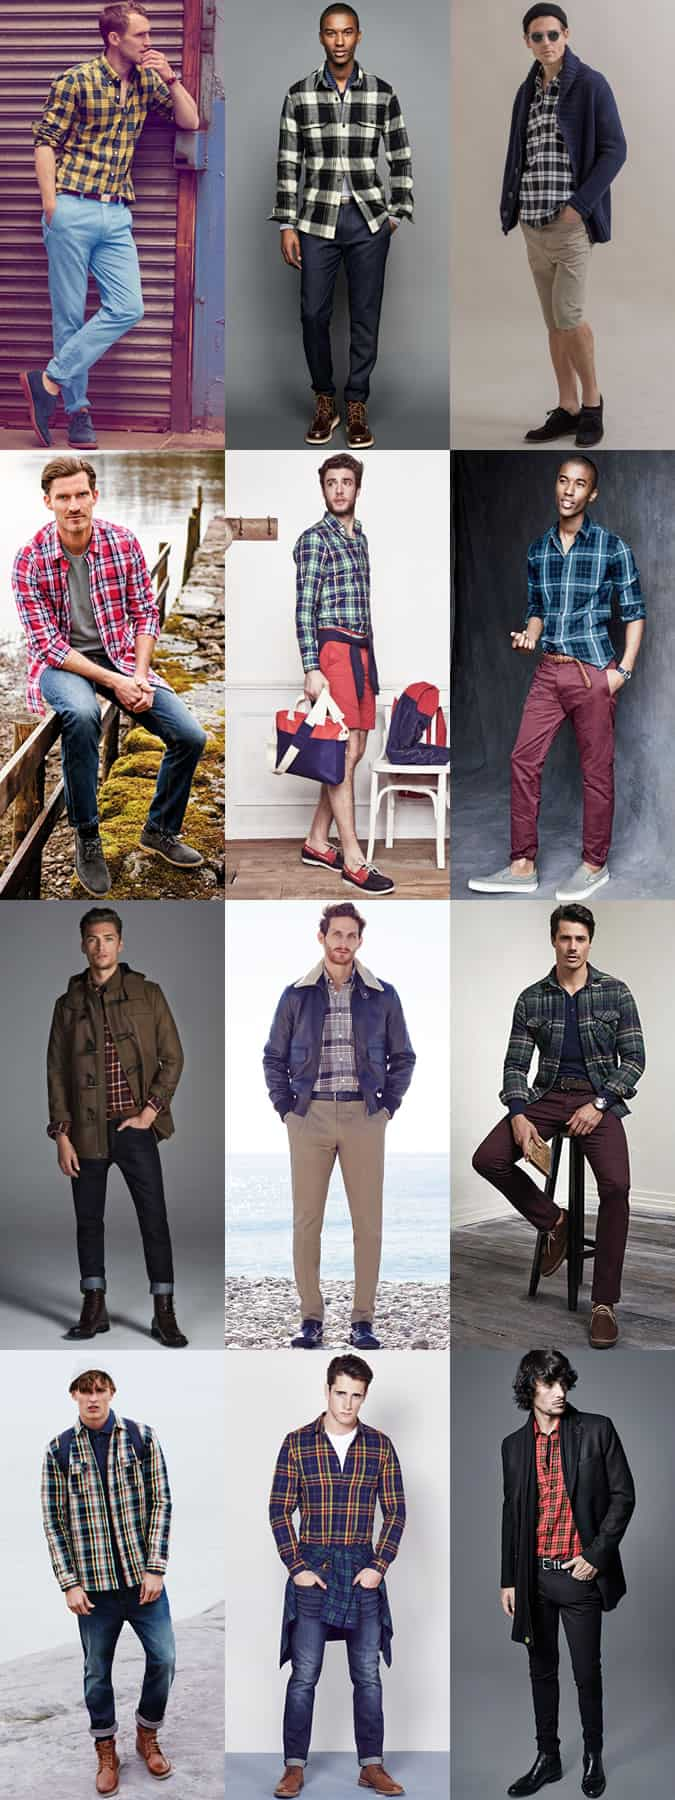 Men's Plaid Shirts - Casual and Smart-Casual Outfit Inspiration Lookbook